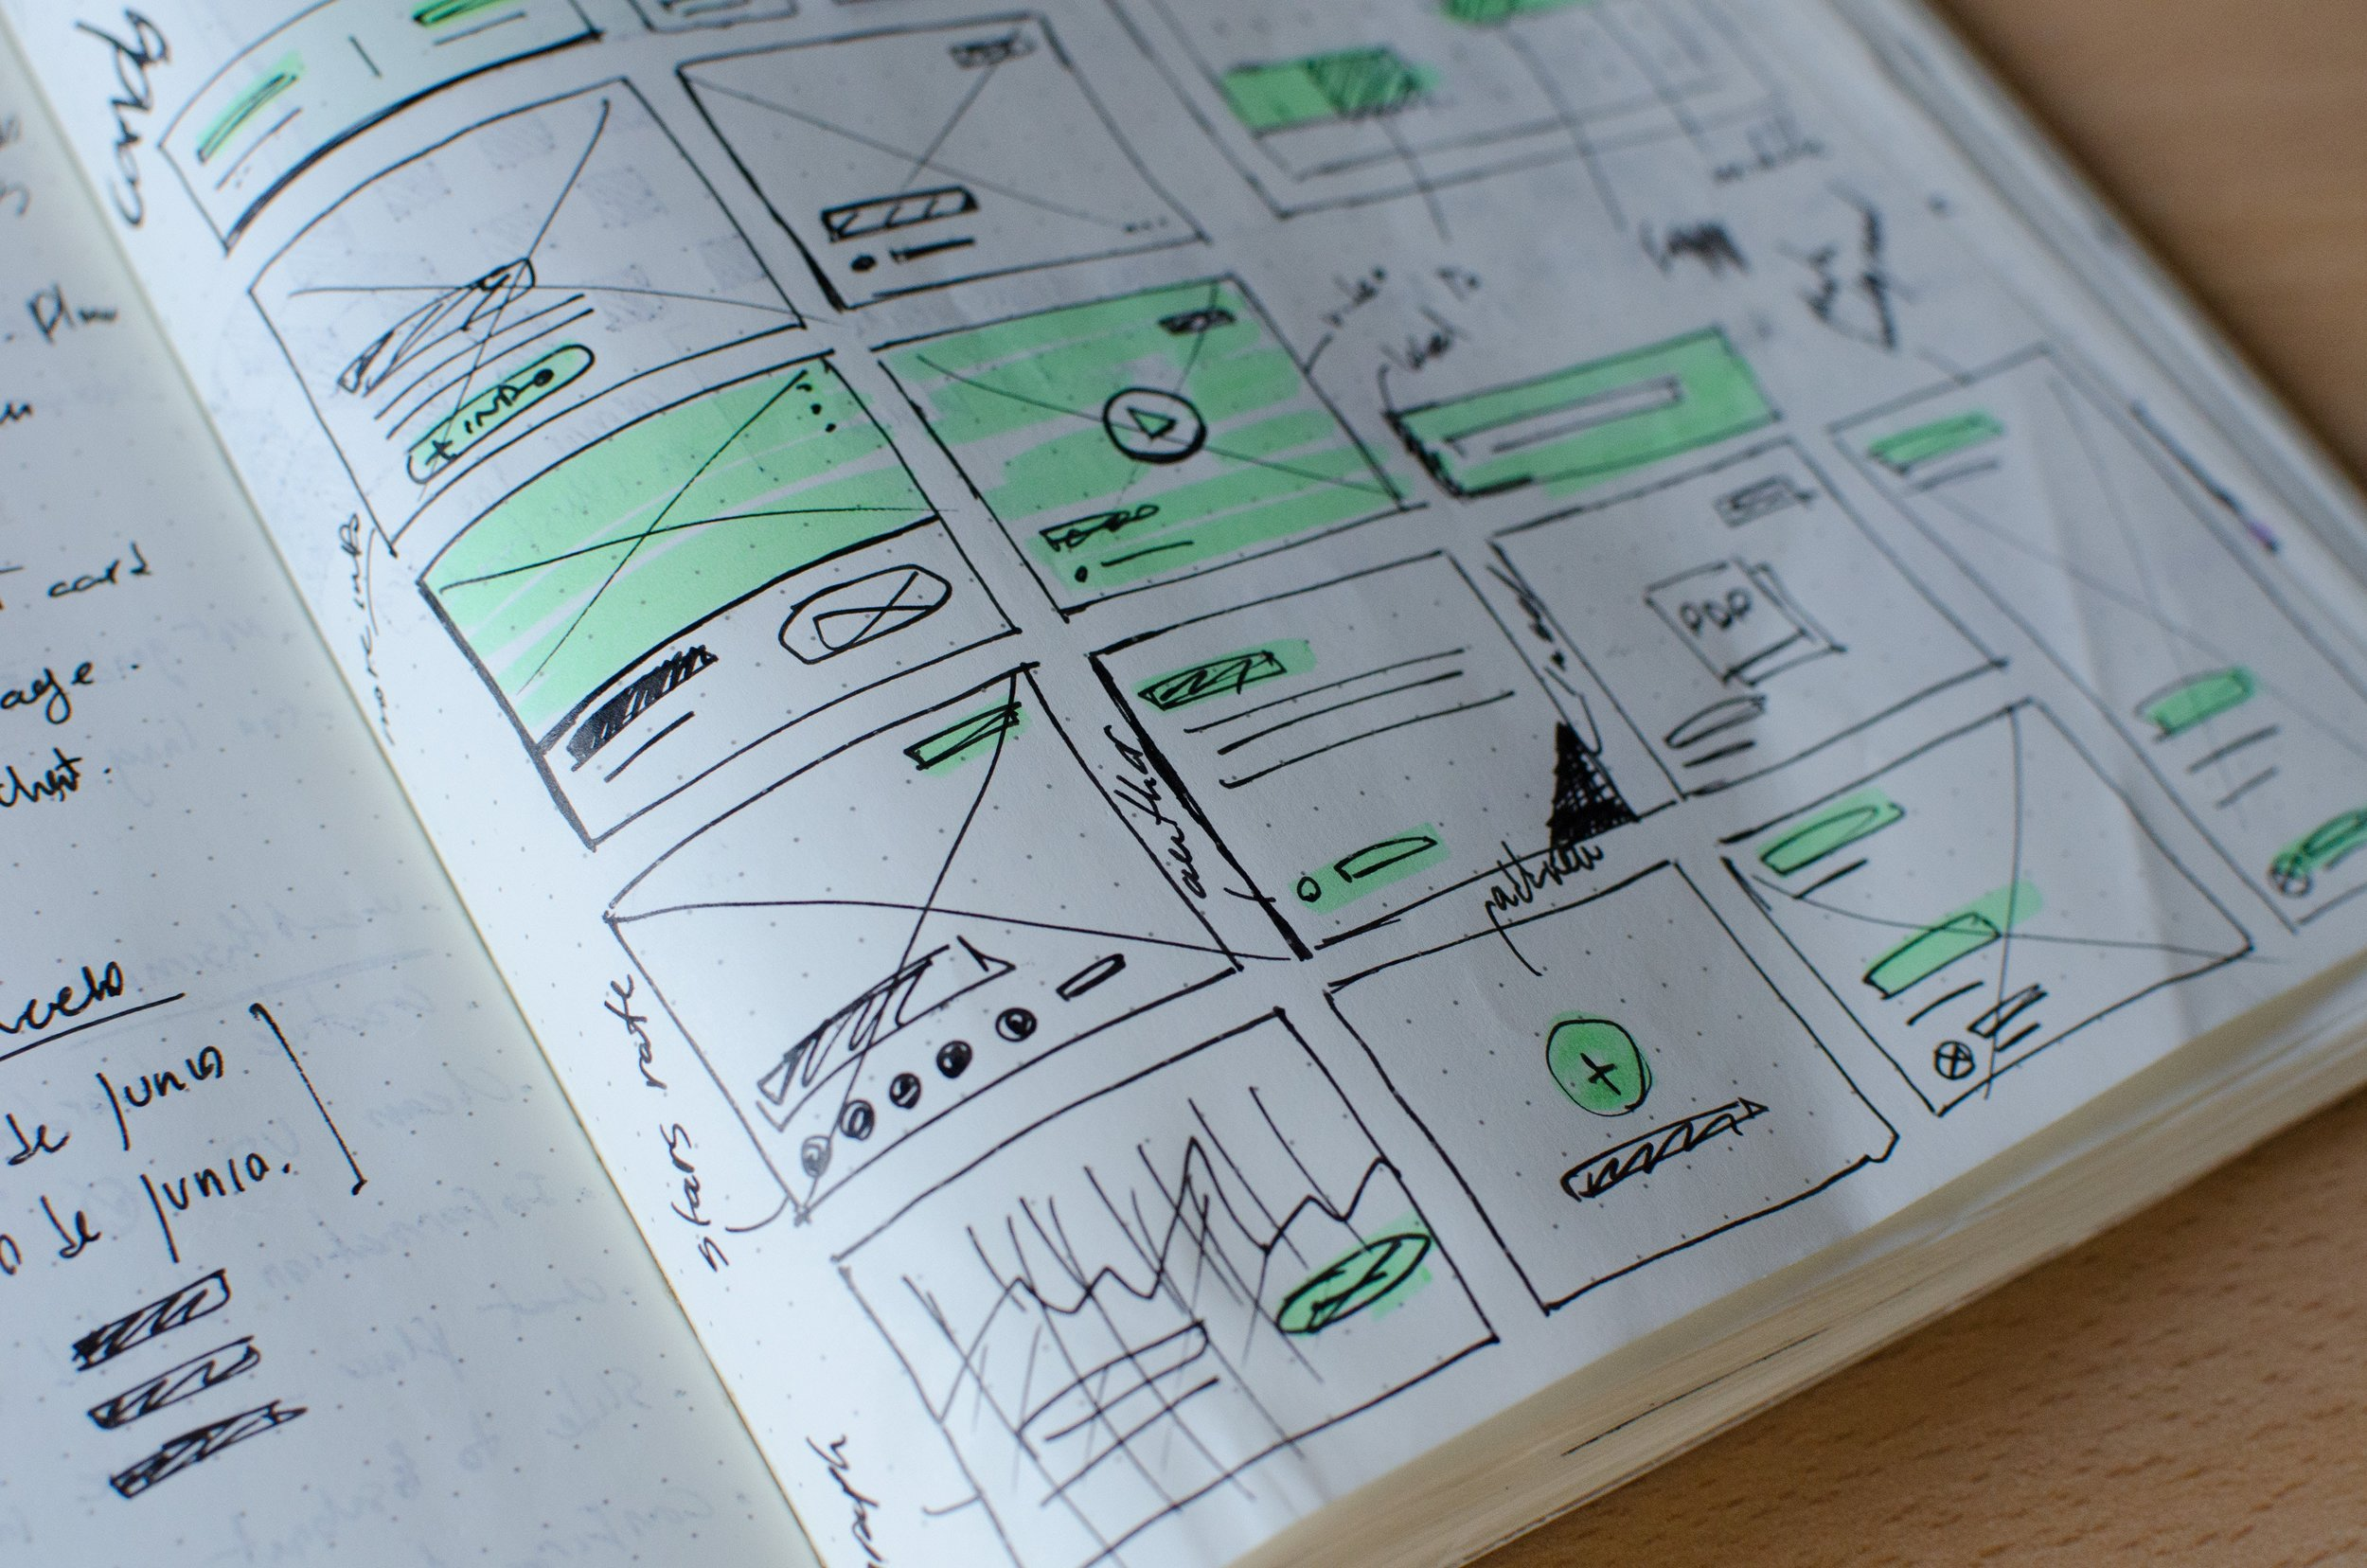 Wireframes of a Website Drawn on a Notepad